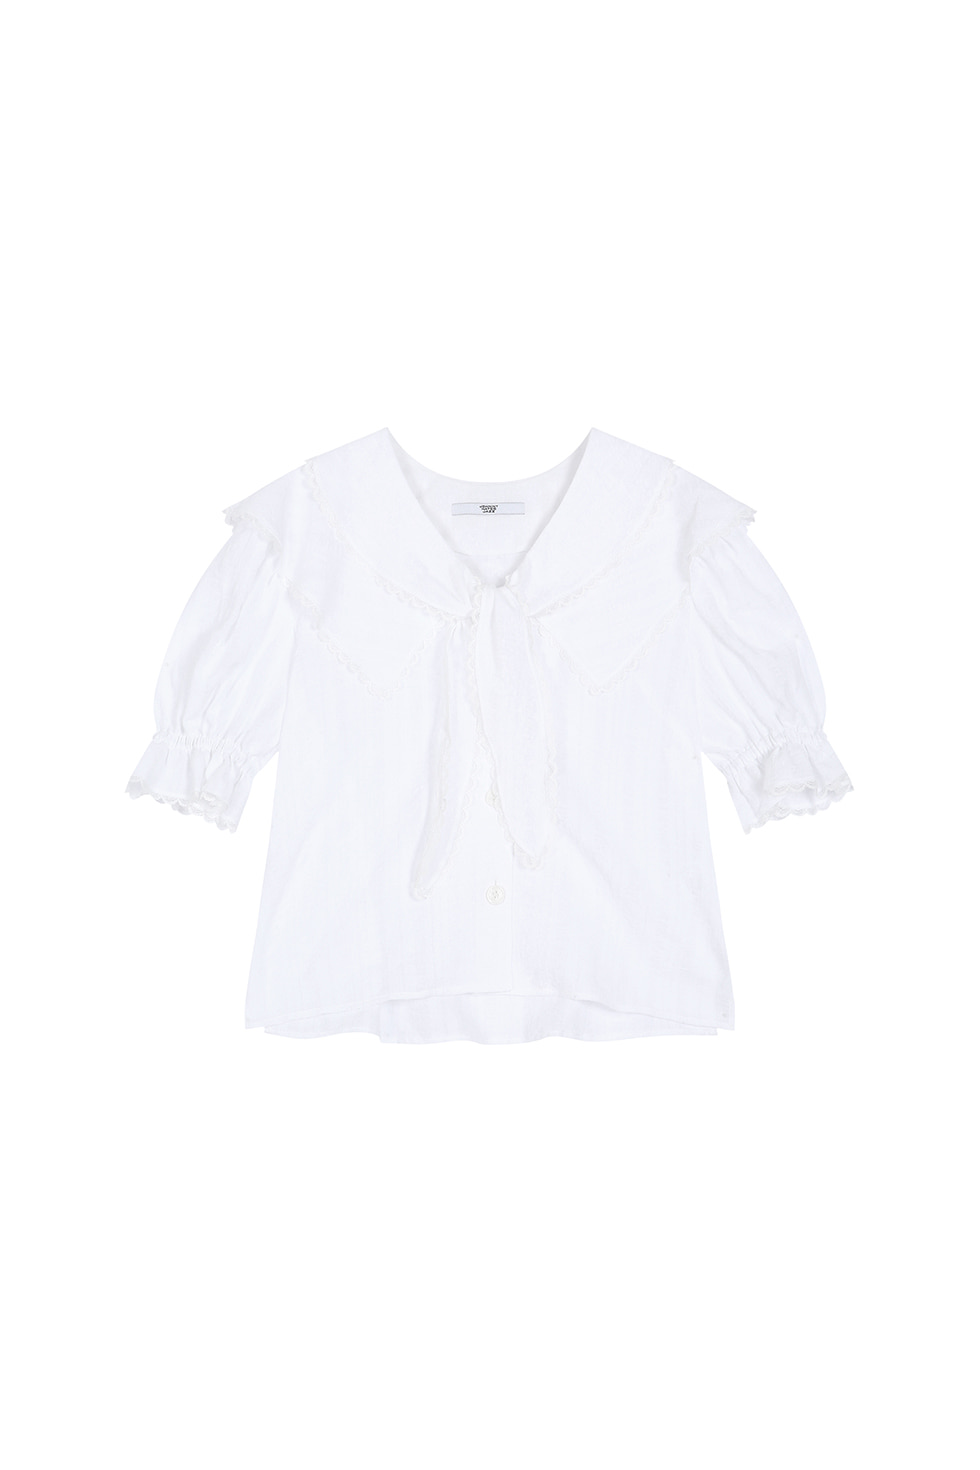 RIBBON TIE COTTON BLOUSE - WHITE